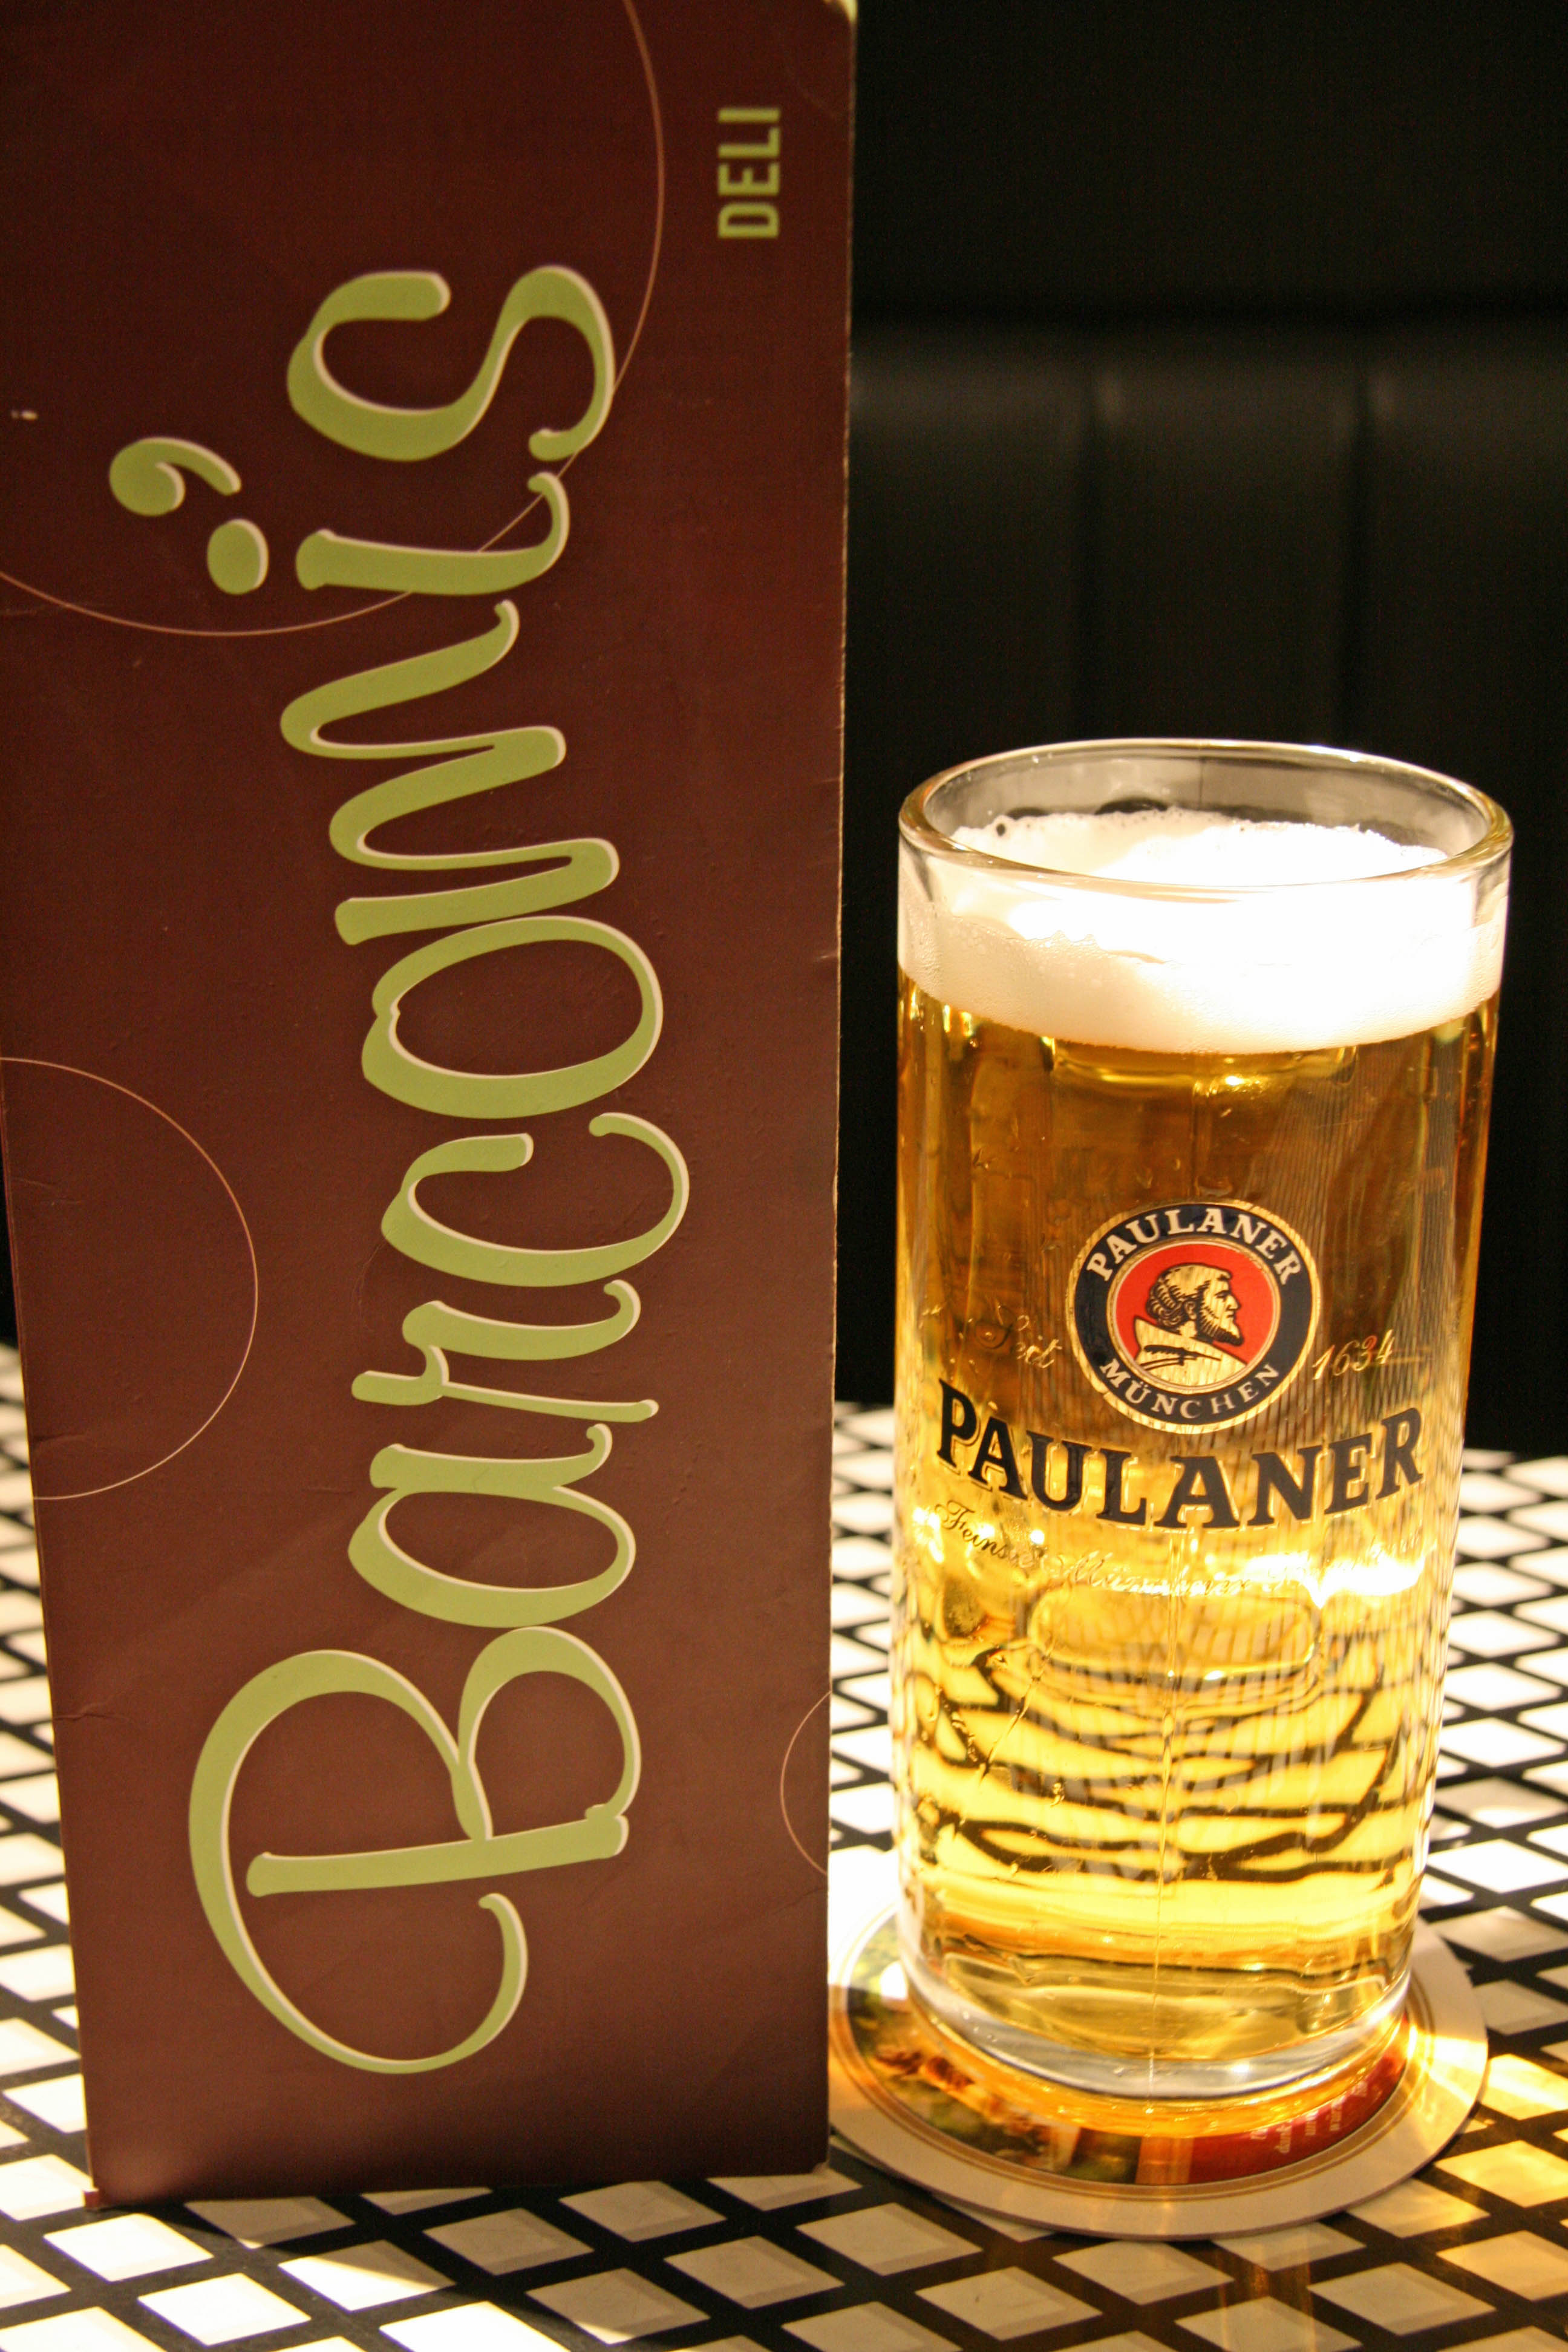 Paulaner Münchner Hell & Menu at Barcomi's Deli in Berlin